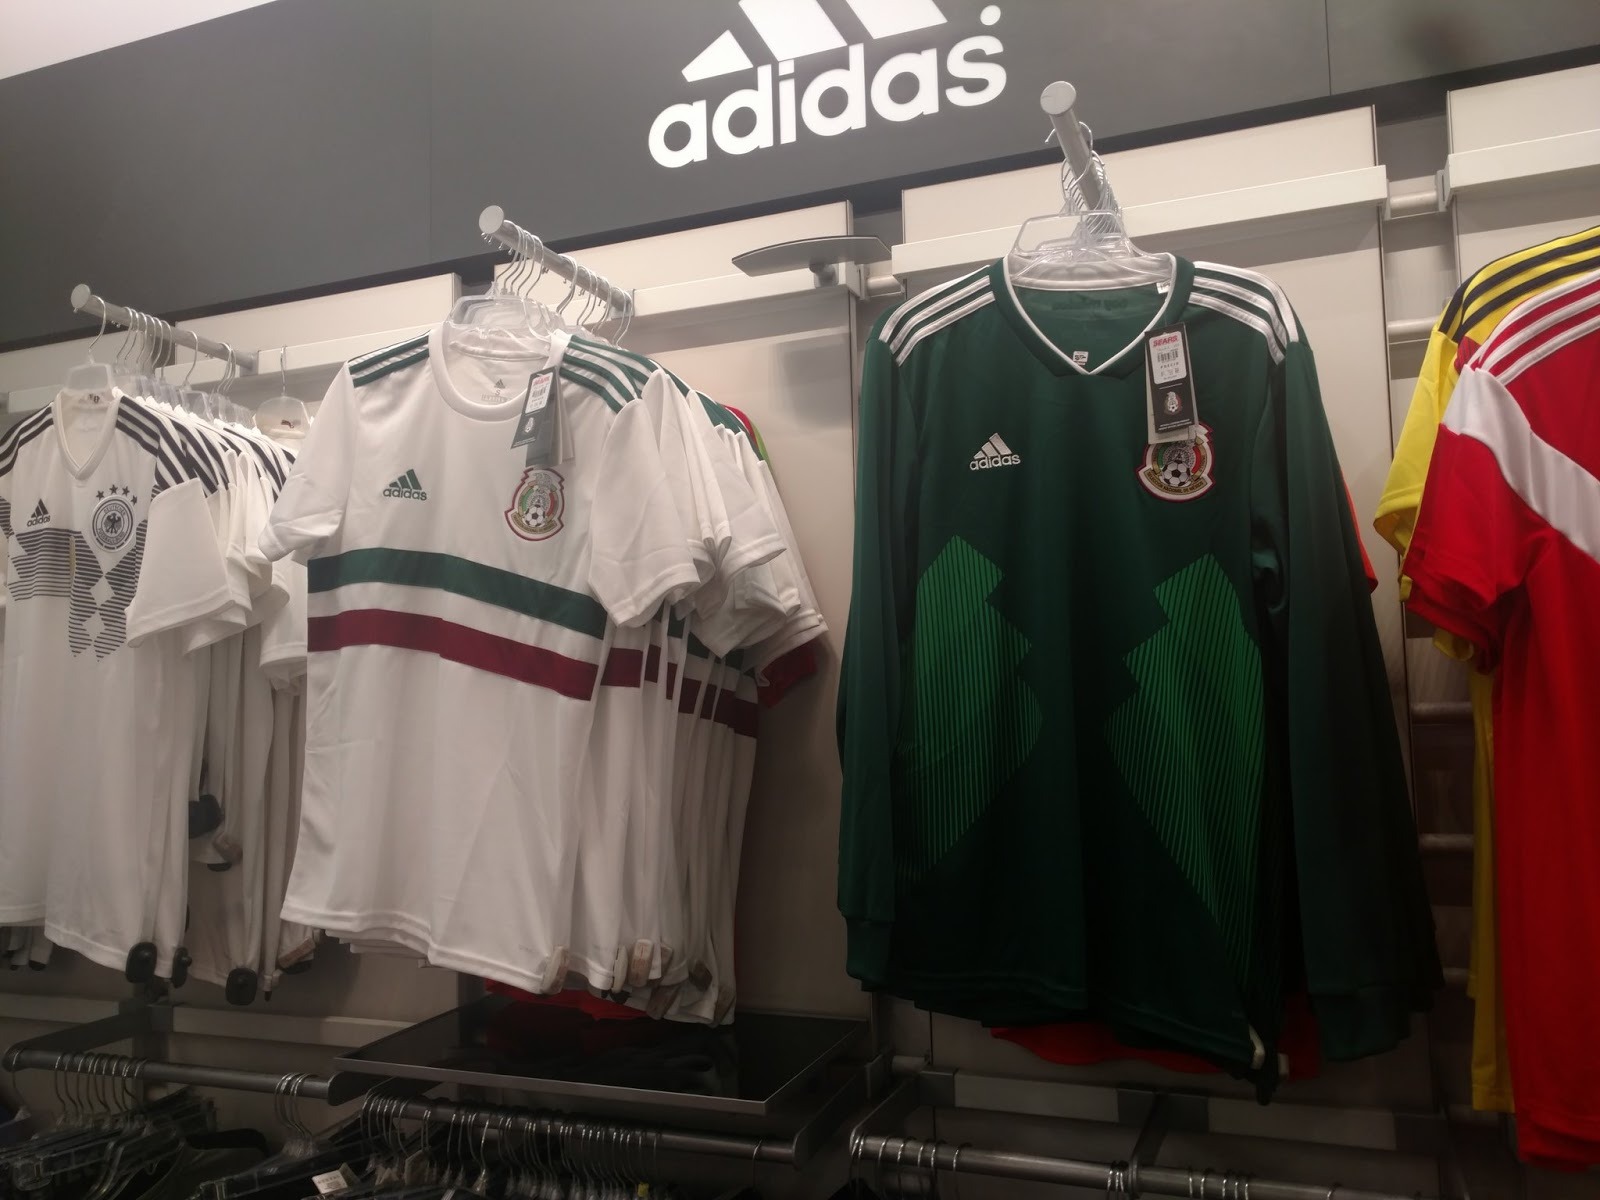 77002cfd3 Update  New real pictures of the Mexico 2018 World Cup away kit have been  leaked (via  Baya087). The new Mexico 2018 away jersey is set for a release  next ...